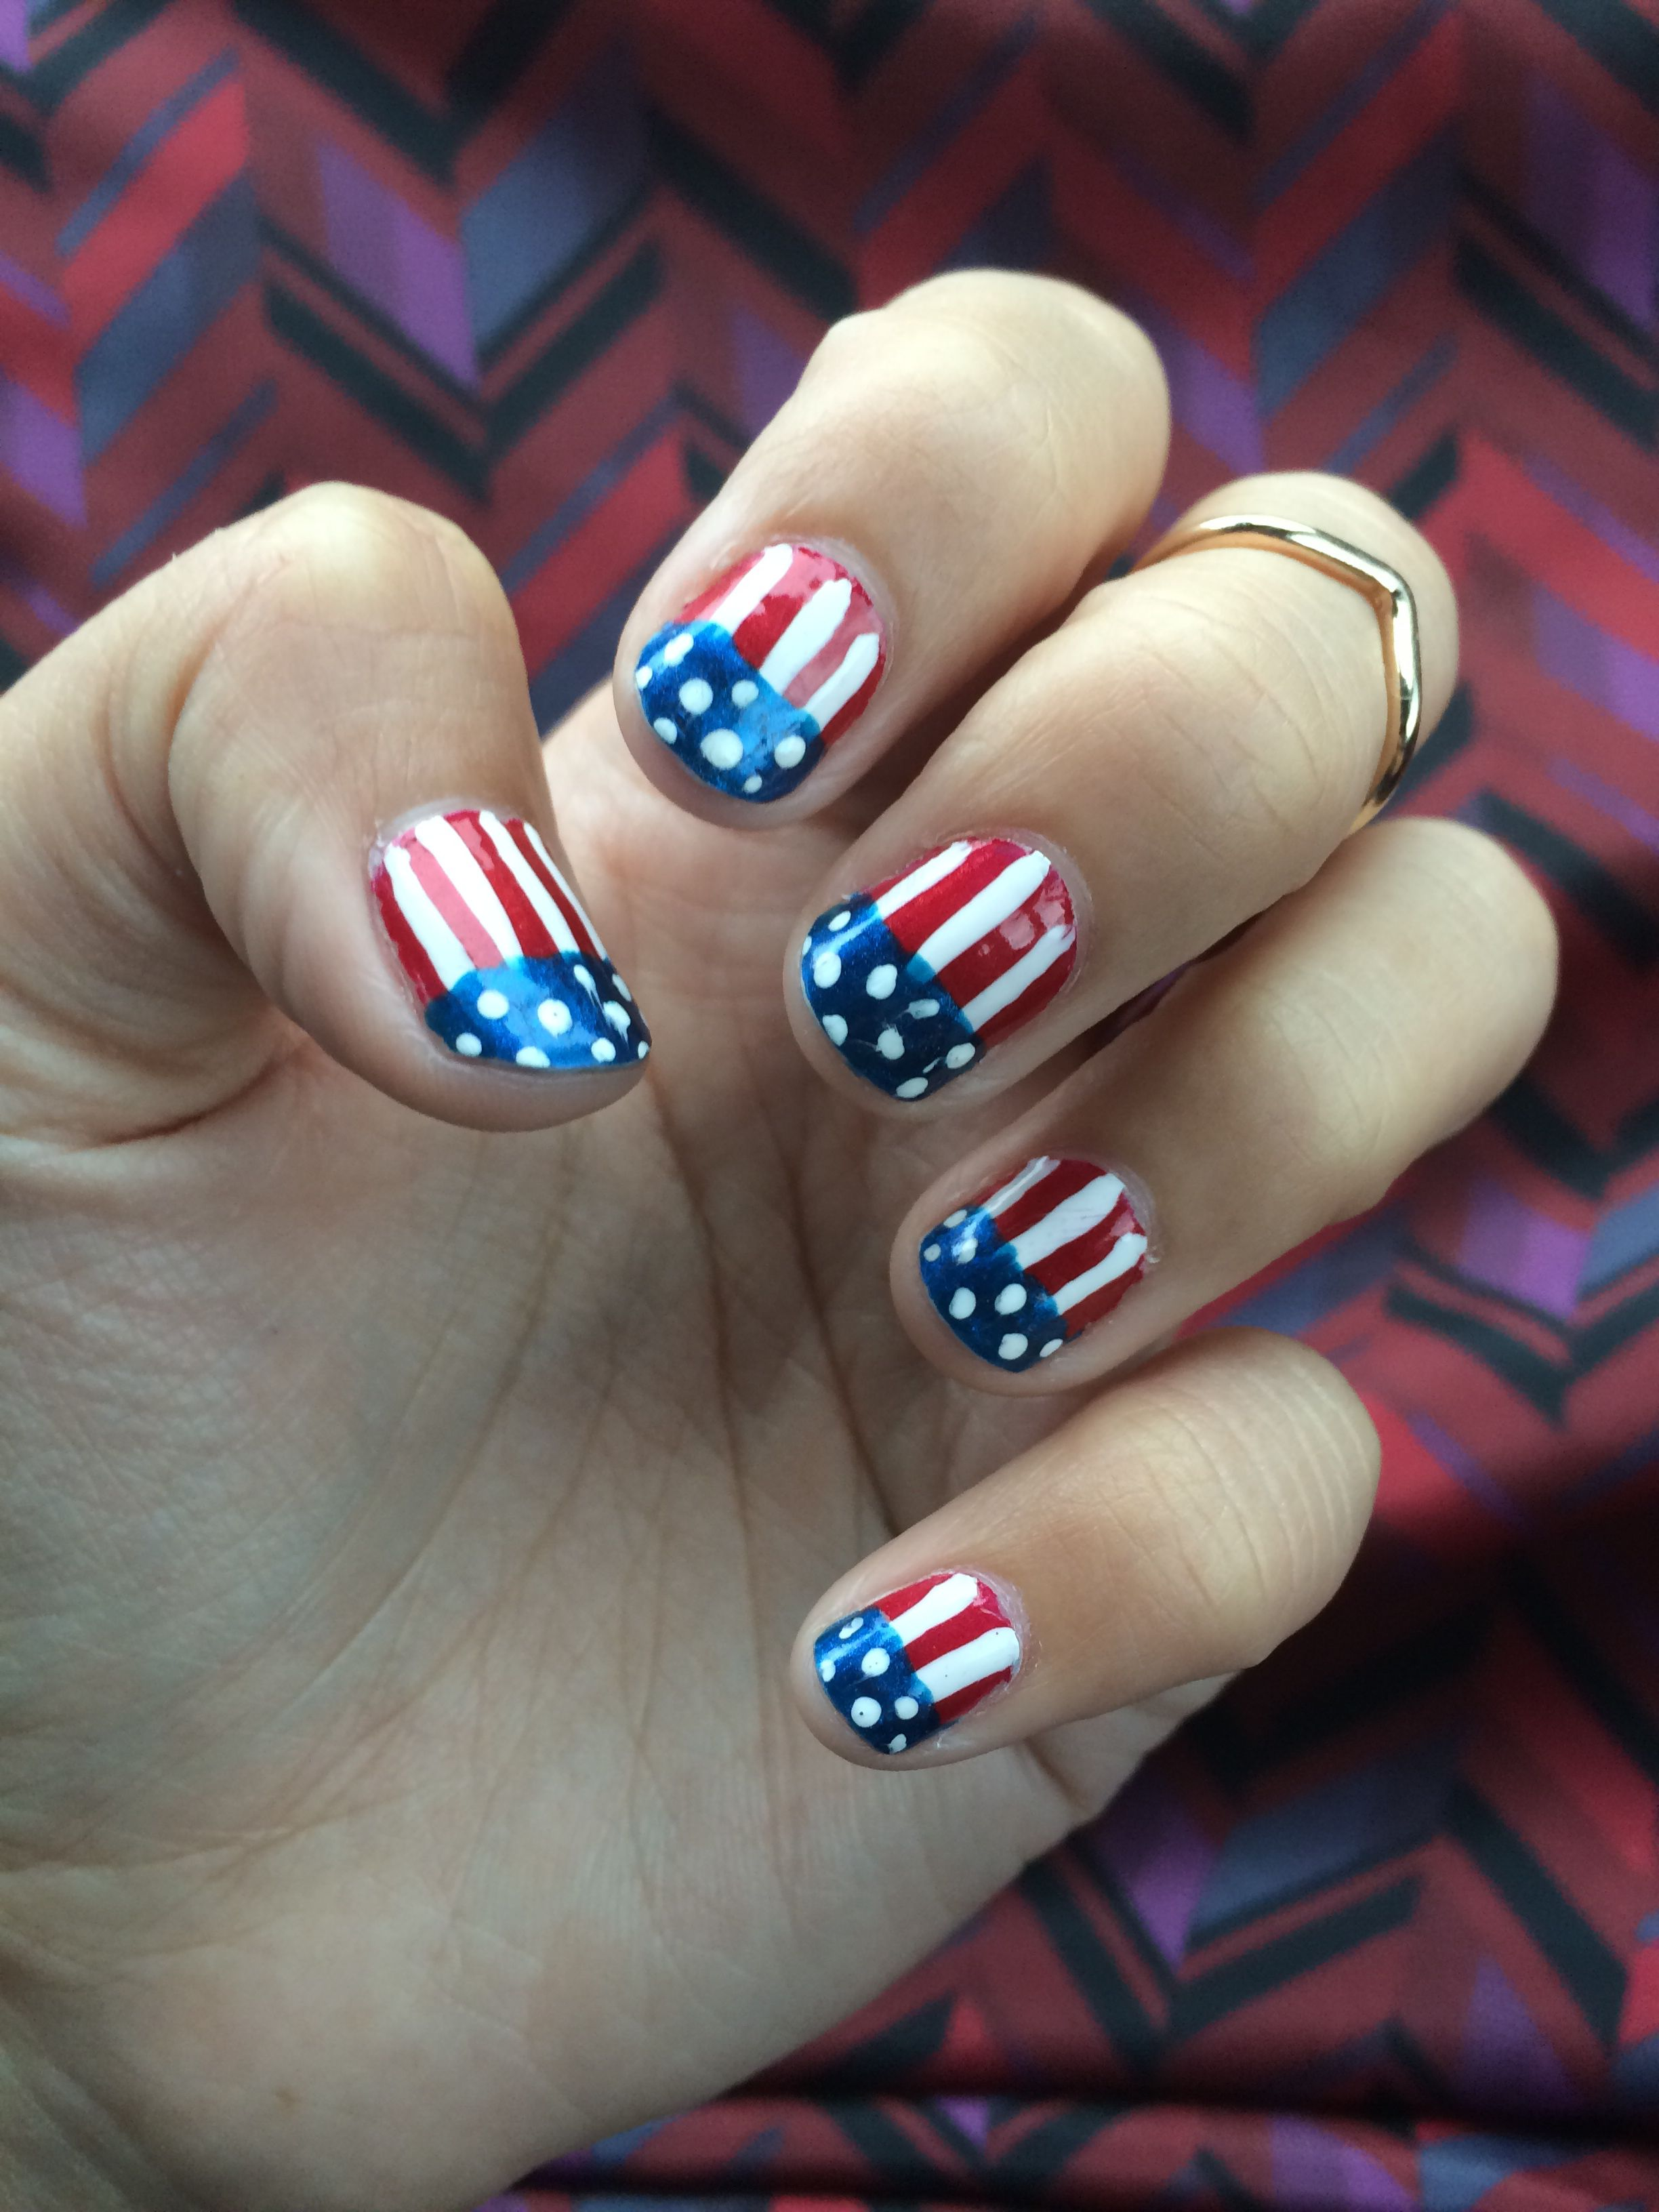 Team USA/America Nail Art For The World Cup!